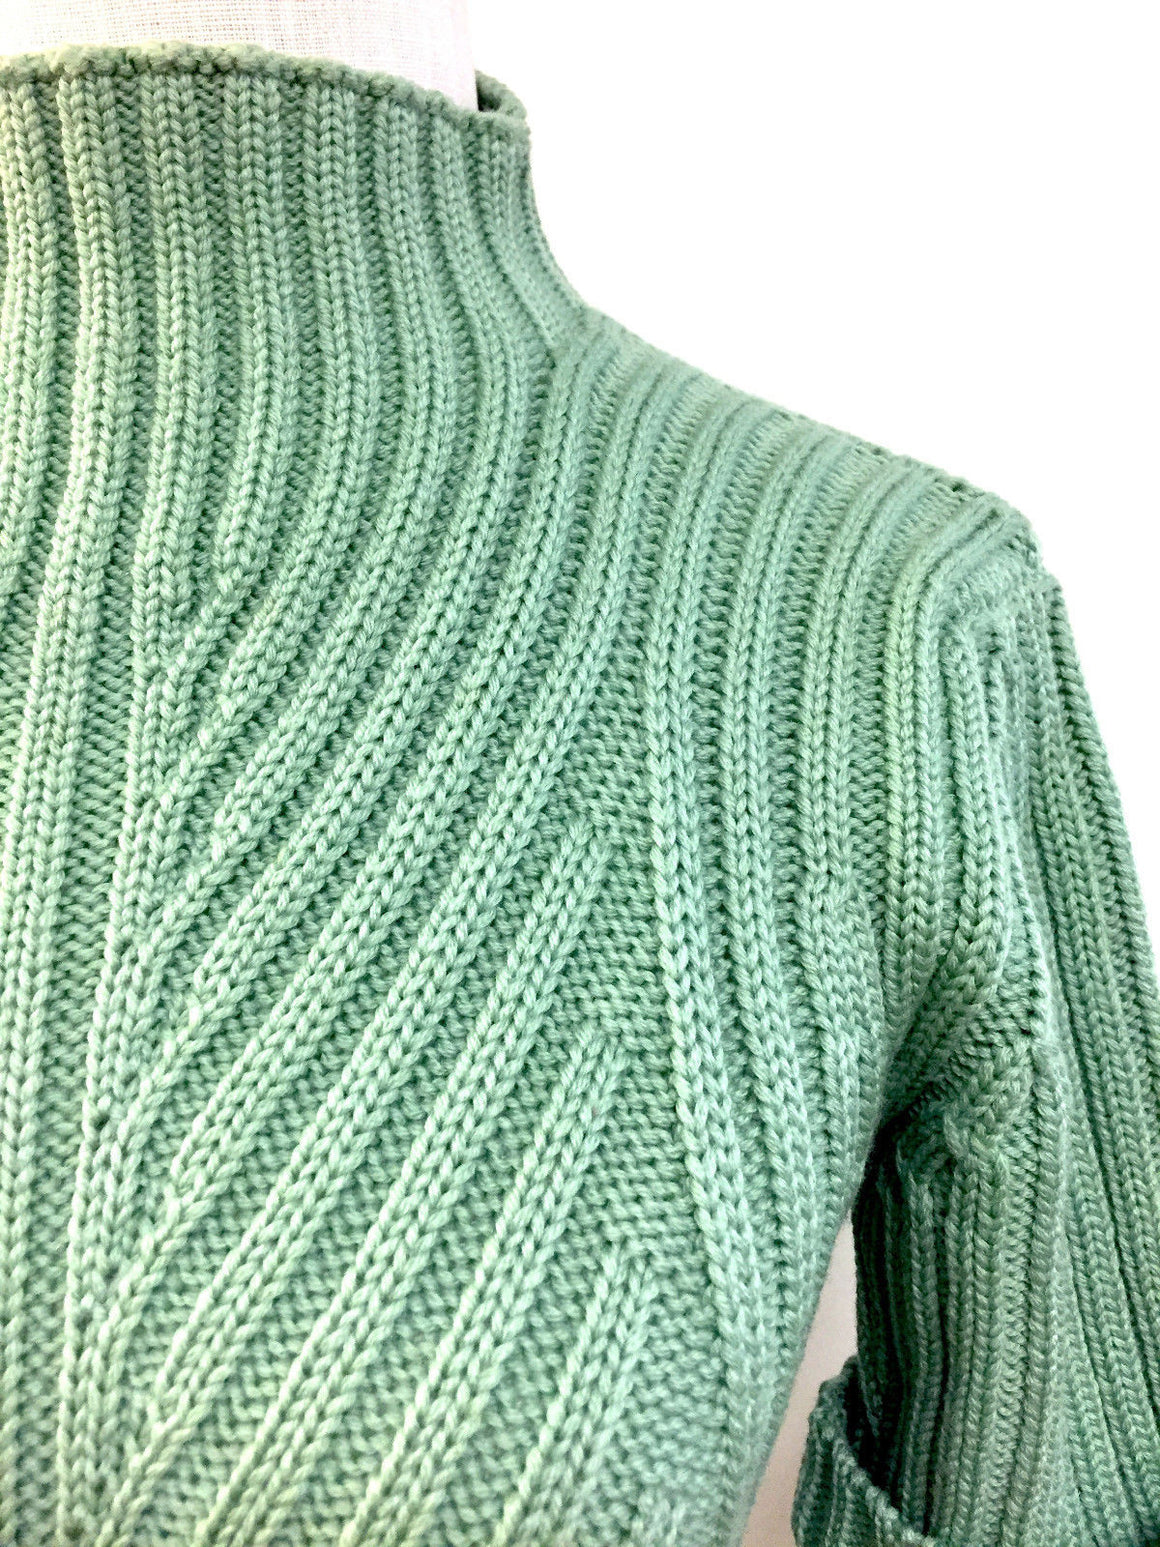 bisbiz.com AVONCELLI Mint-Green Ribbed-Knit Wool Short-Sleeve Mock-Turtleneck Sweater Top Size: M - Bis Luxury Resale